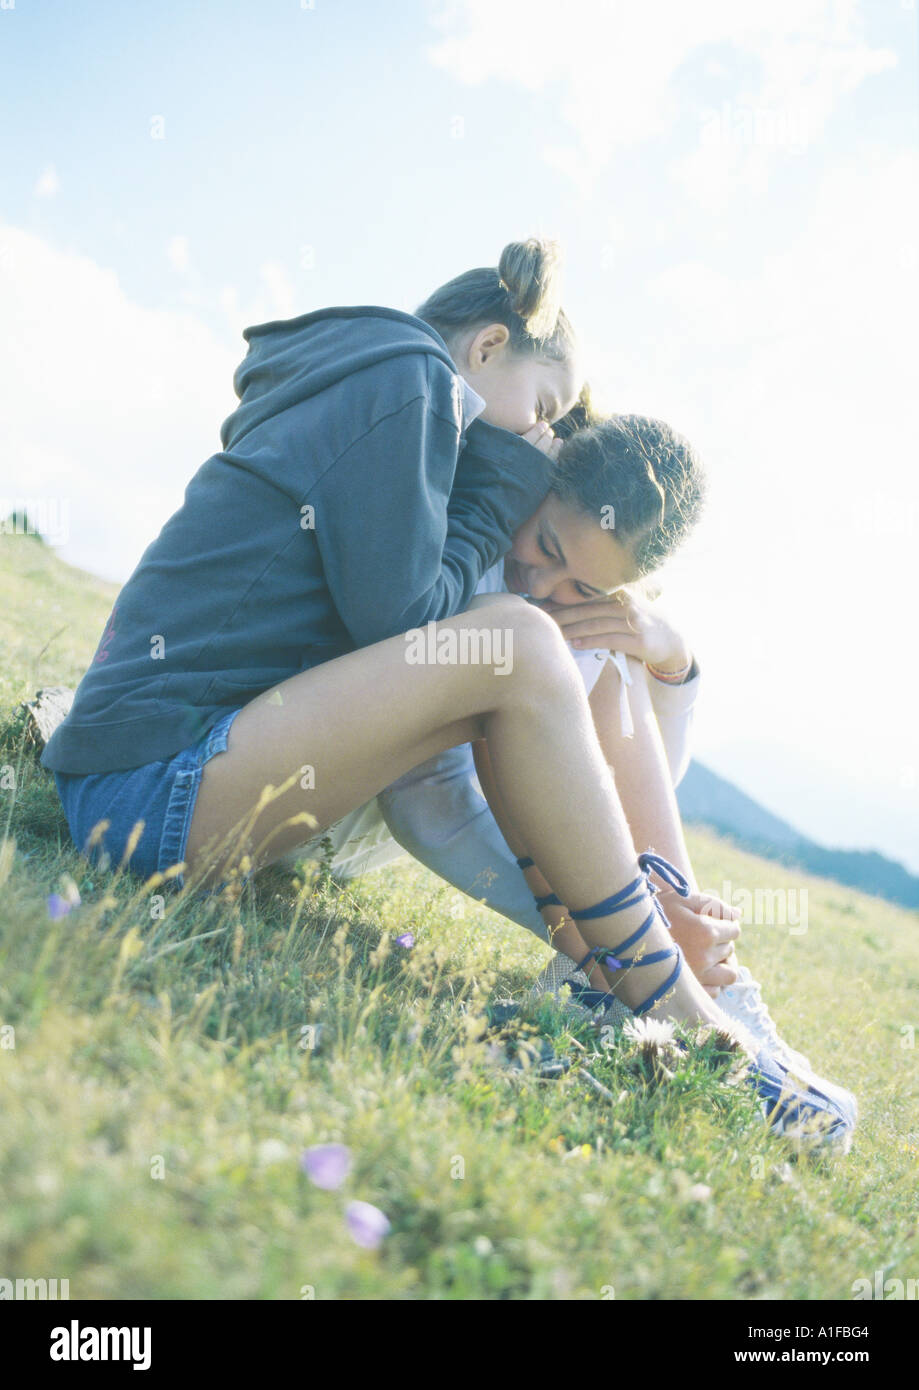 Two girls whispering and sitting on grass together - Stock Image